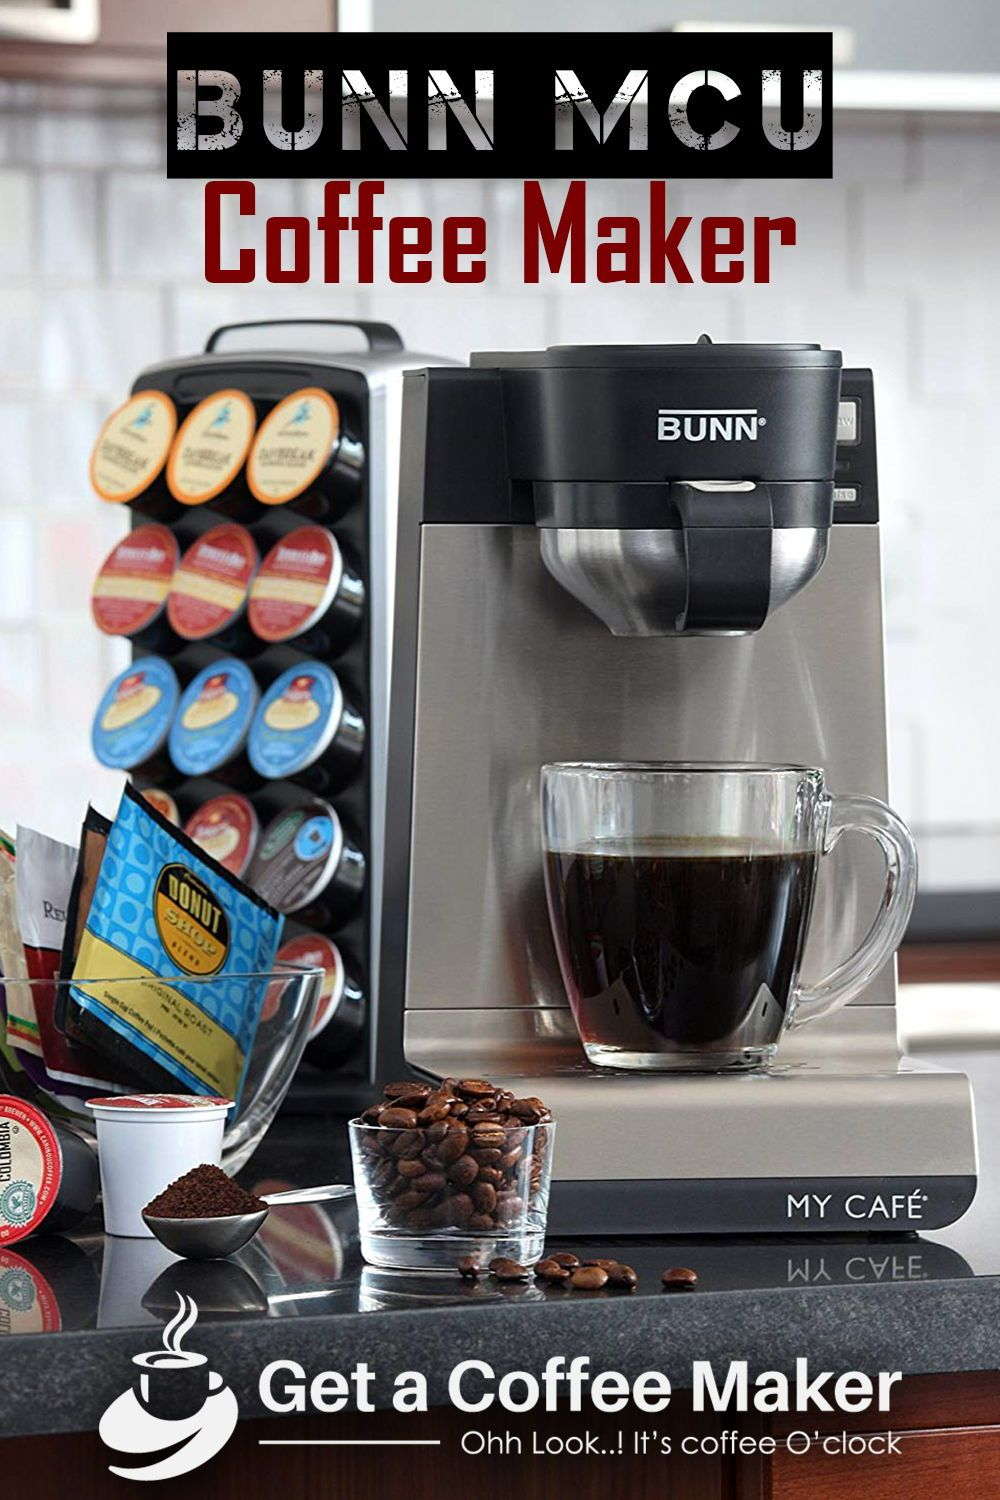 Tested Bunn Mcu Single Cup Coffee Maker Review With Images